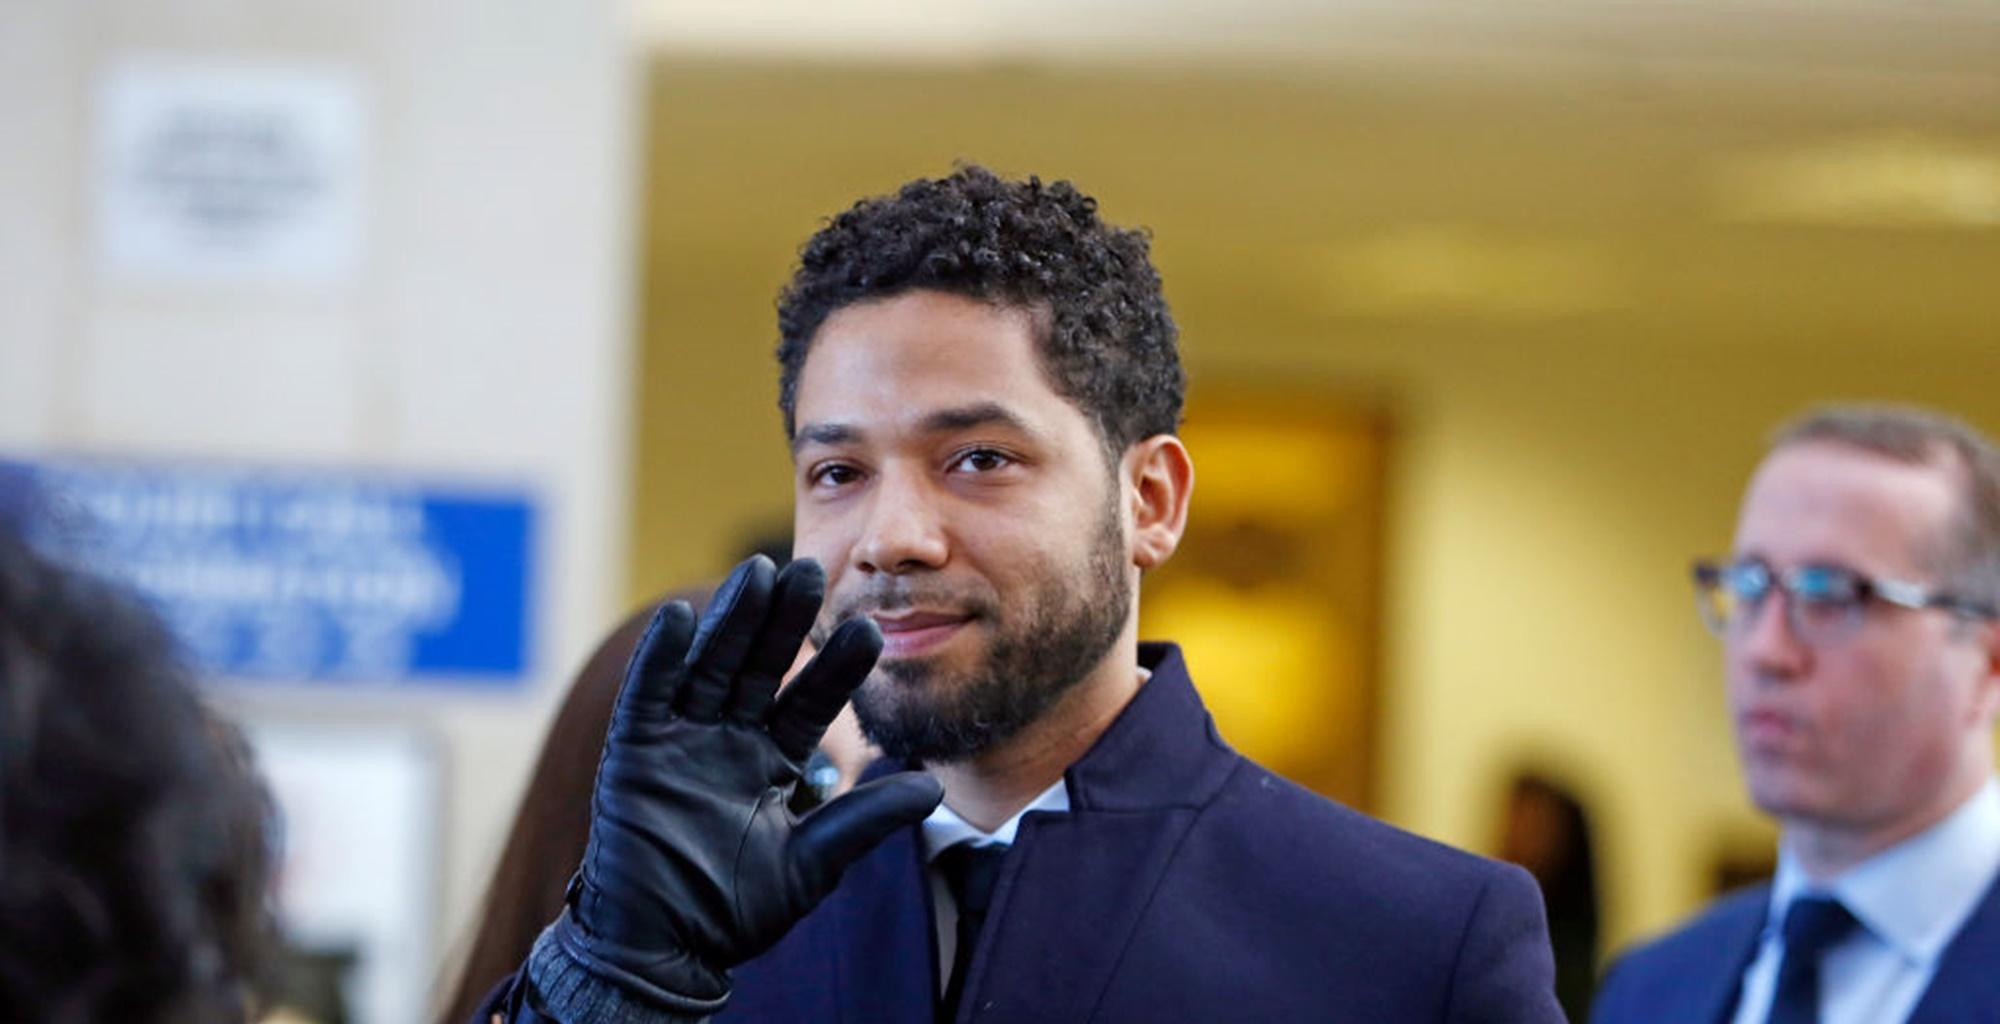 Jussie Smollett Does Not Want To Reimburse The City Of Chicago For The Investigation Of Alleged Hoax -- He Is Now Getting Sued